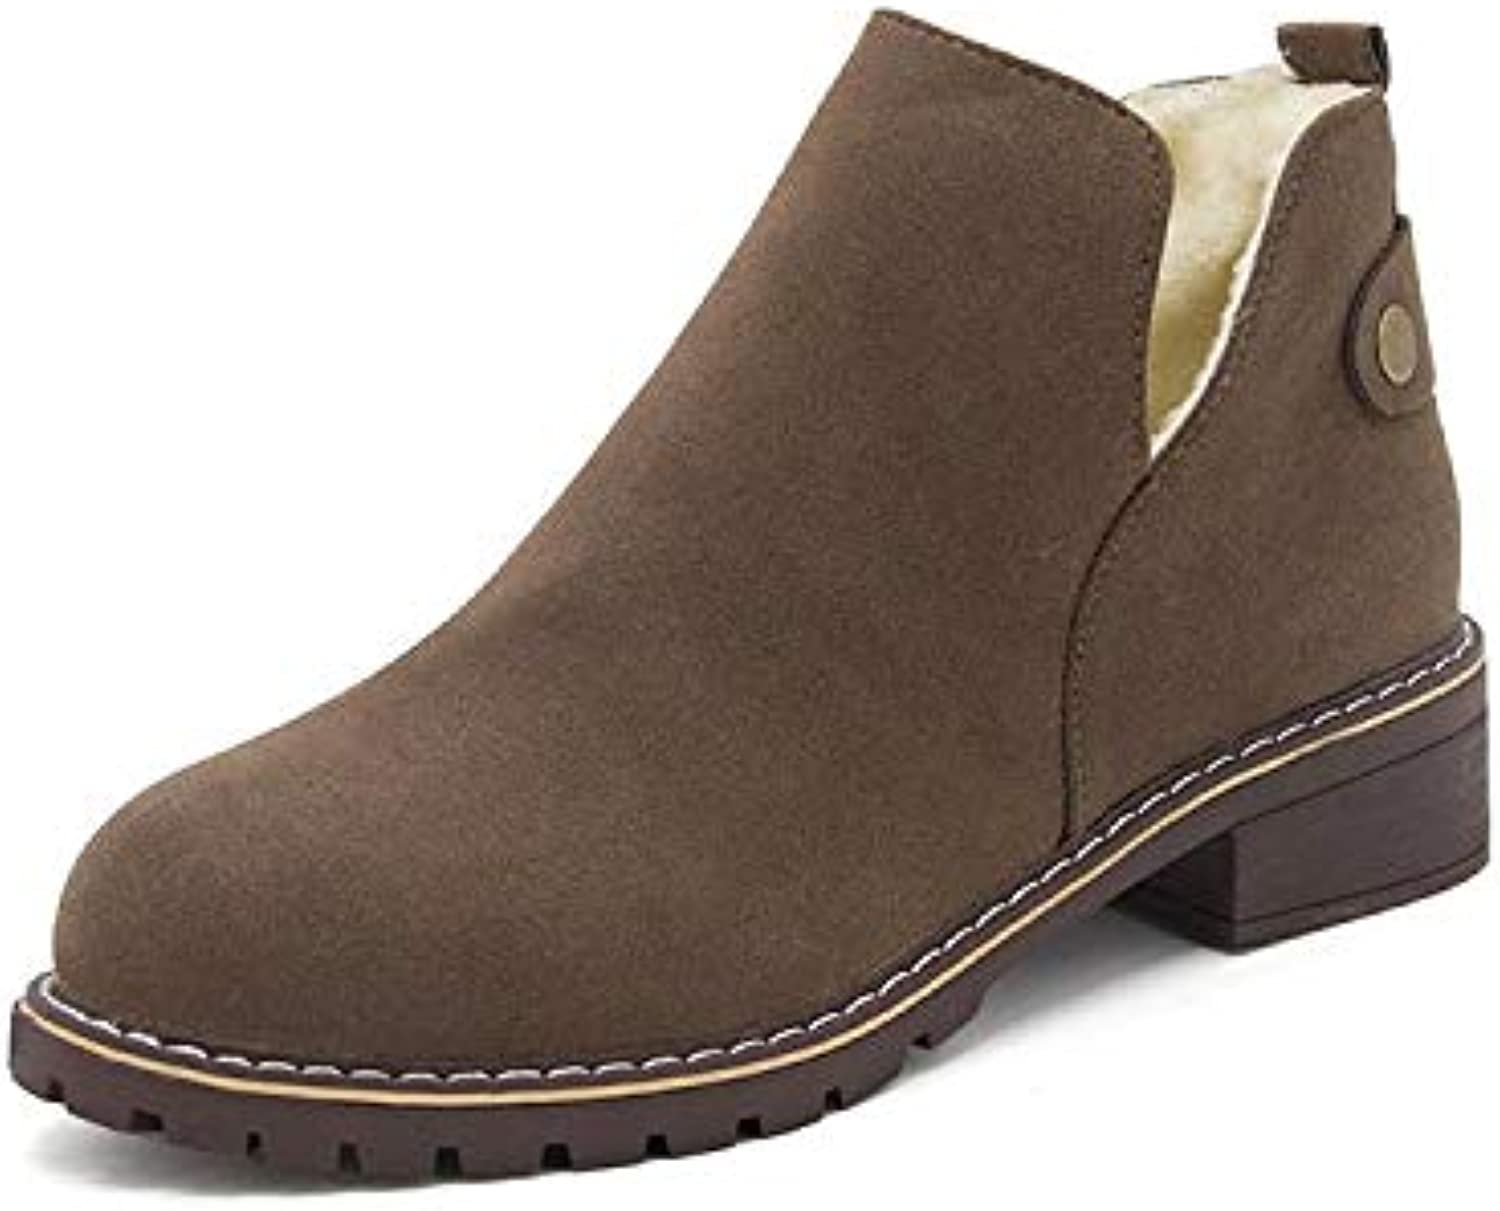 LingGT Oxford Faux Suede Women Boots Button Fur Lined Ankle Booties Flats (color   Khaki, Size   CA 8)